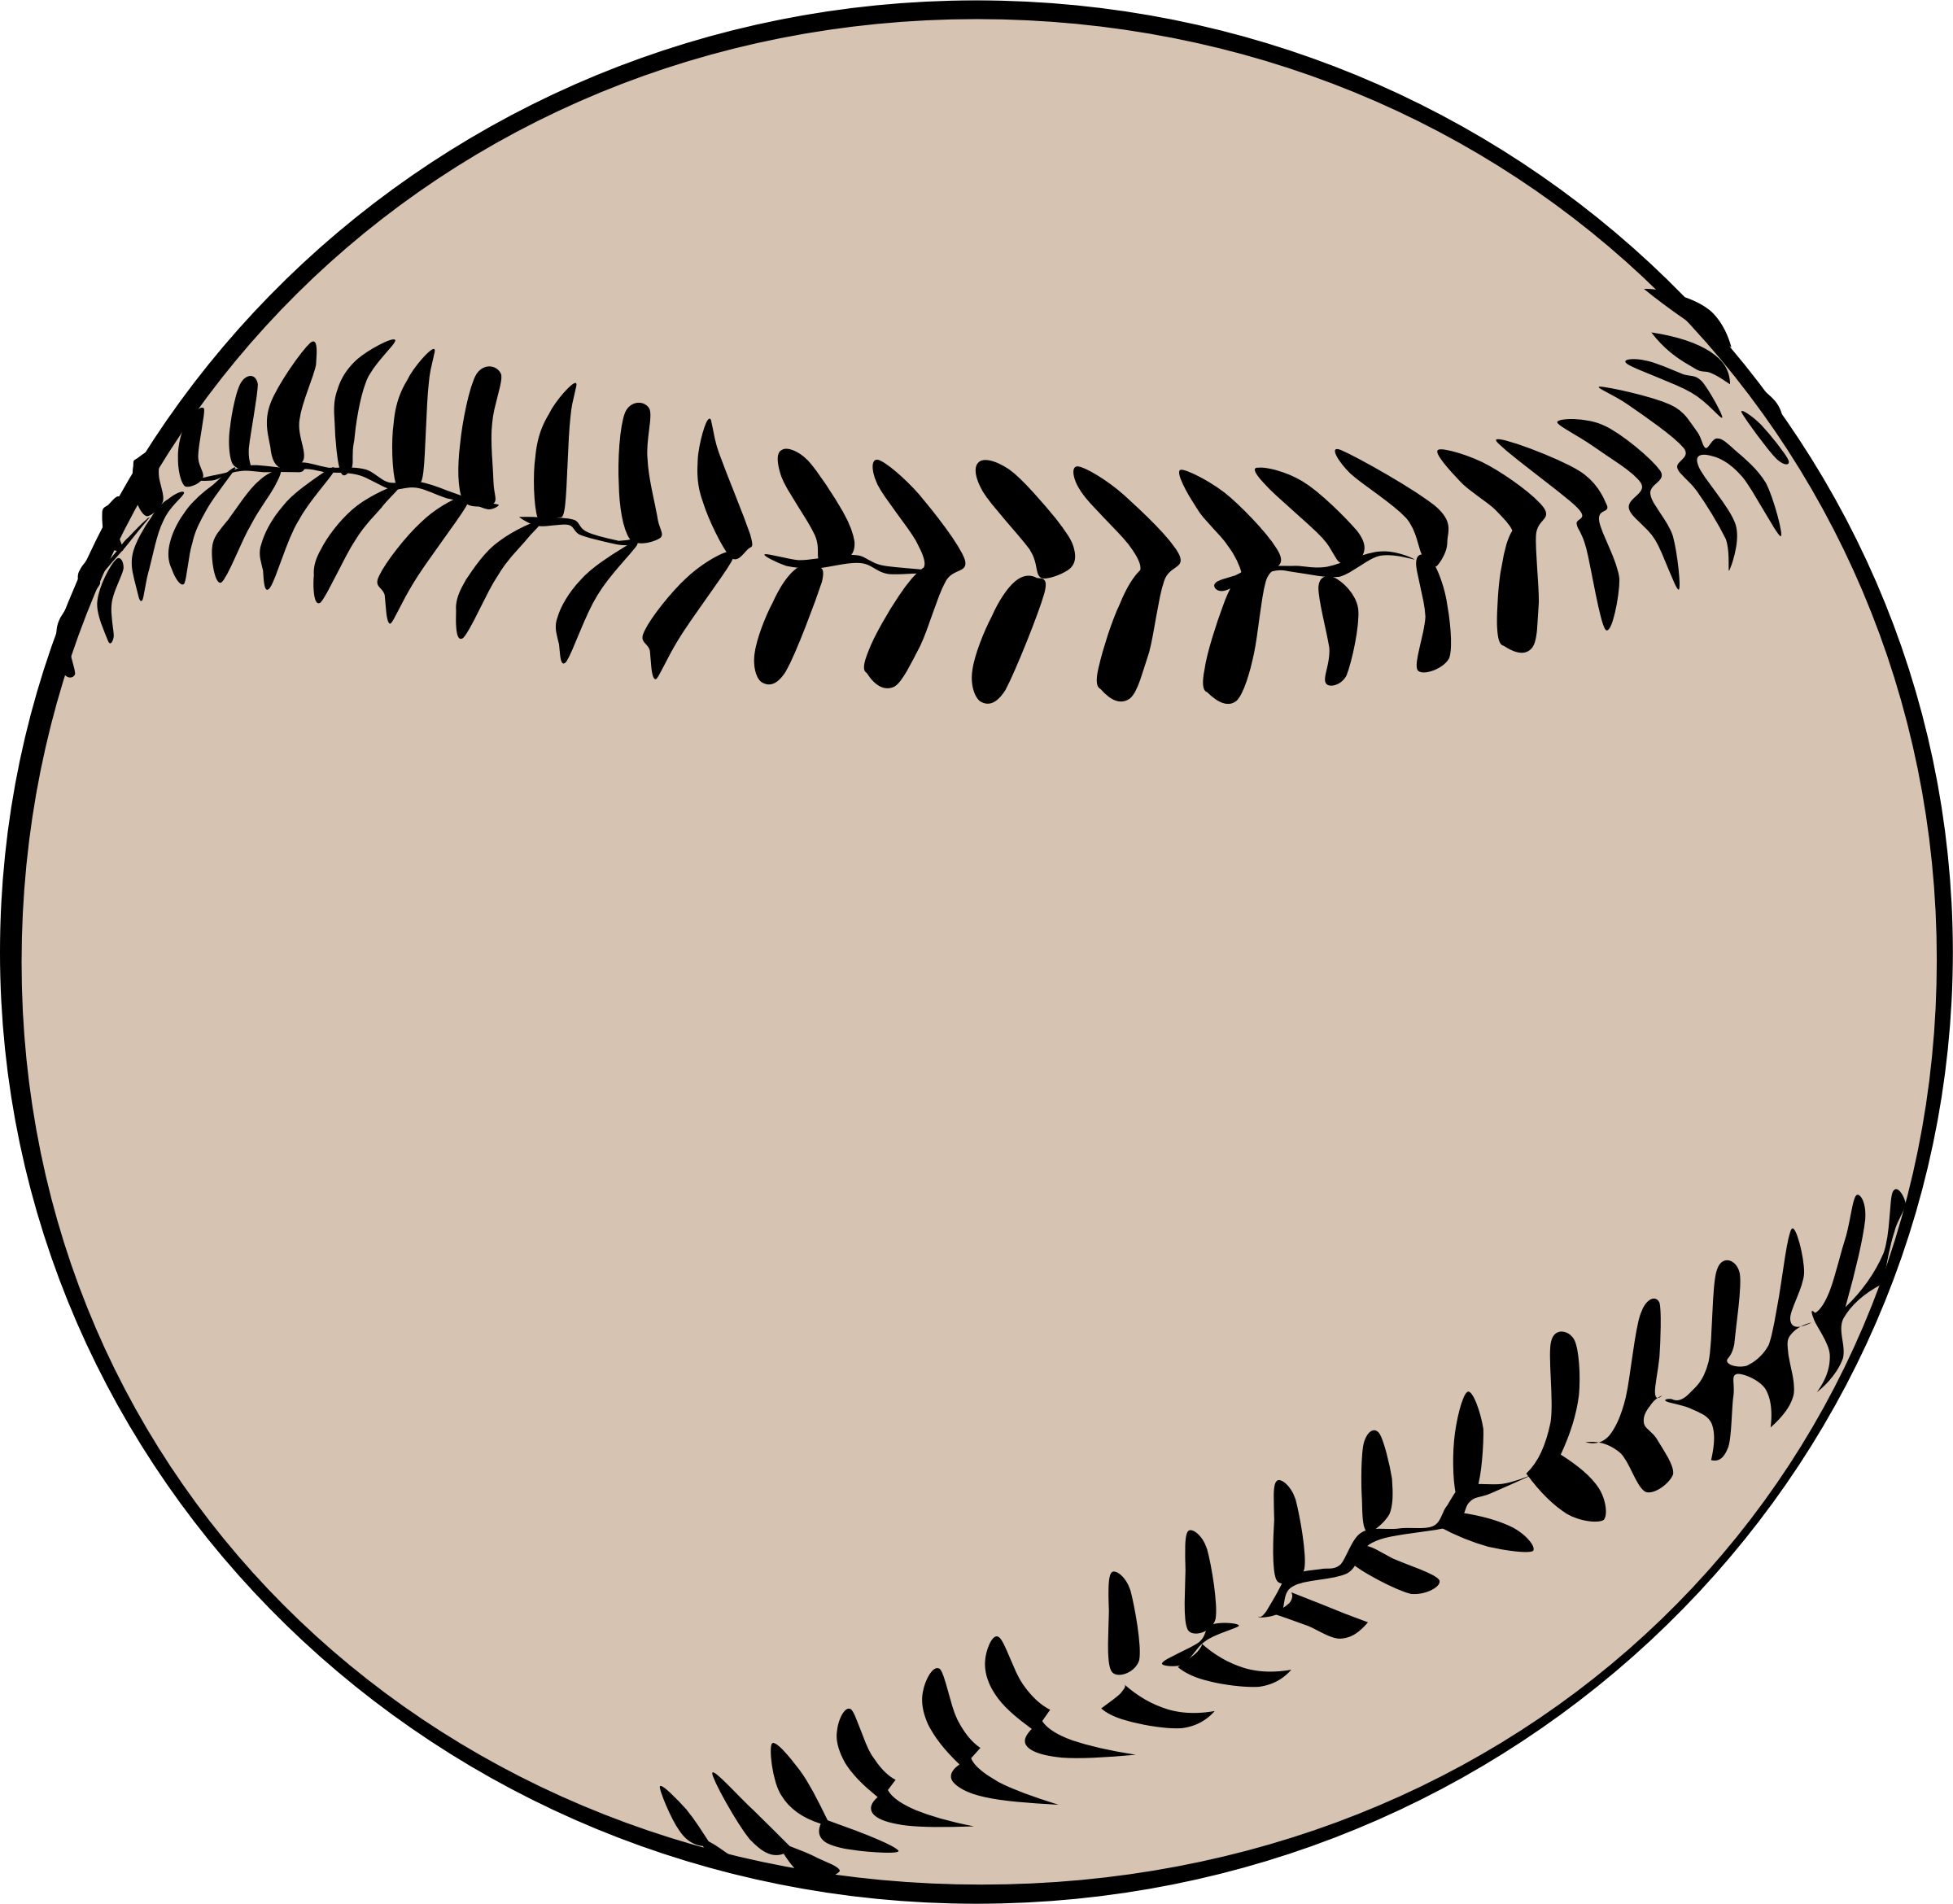 Old baseball clipart png freeuse stock Clipart - Baseball Offwhite png freeuse stock